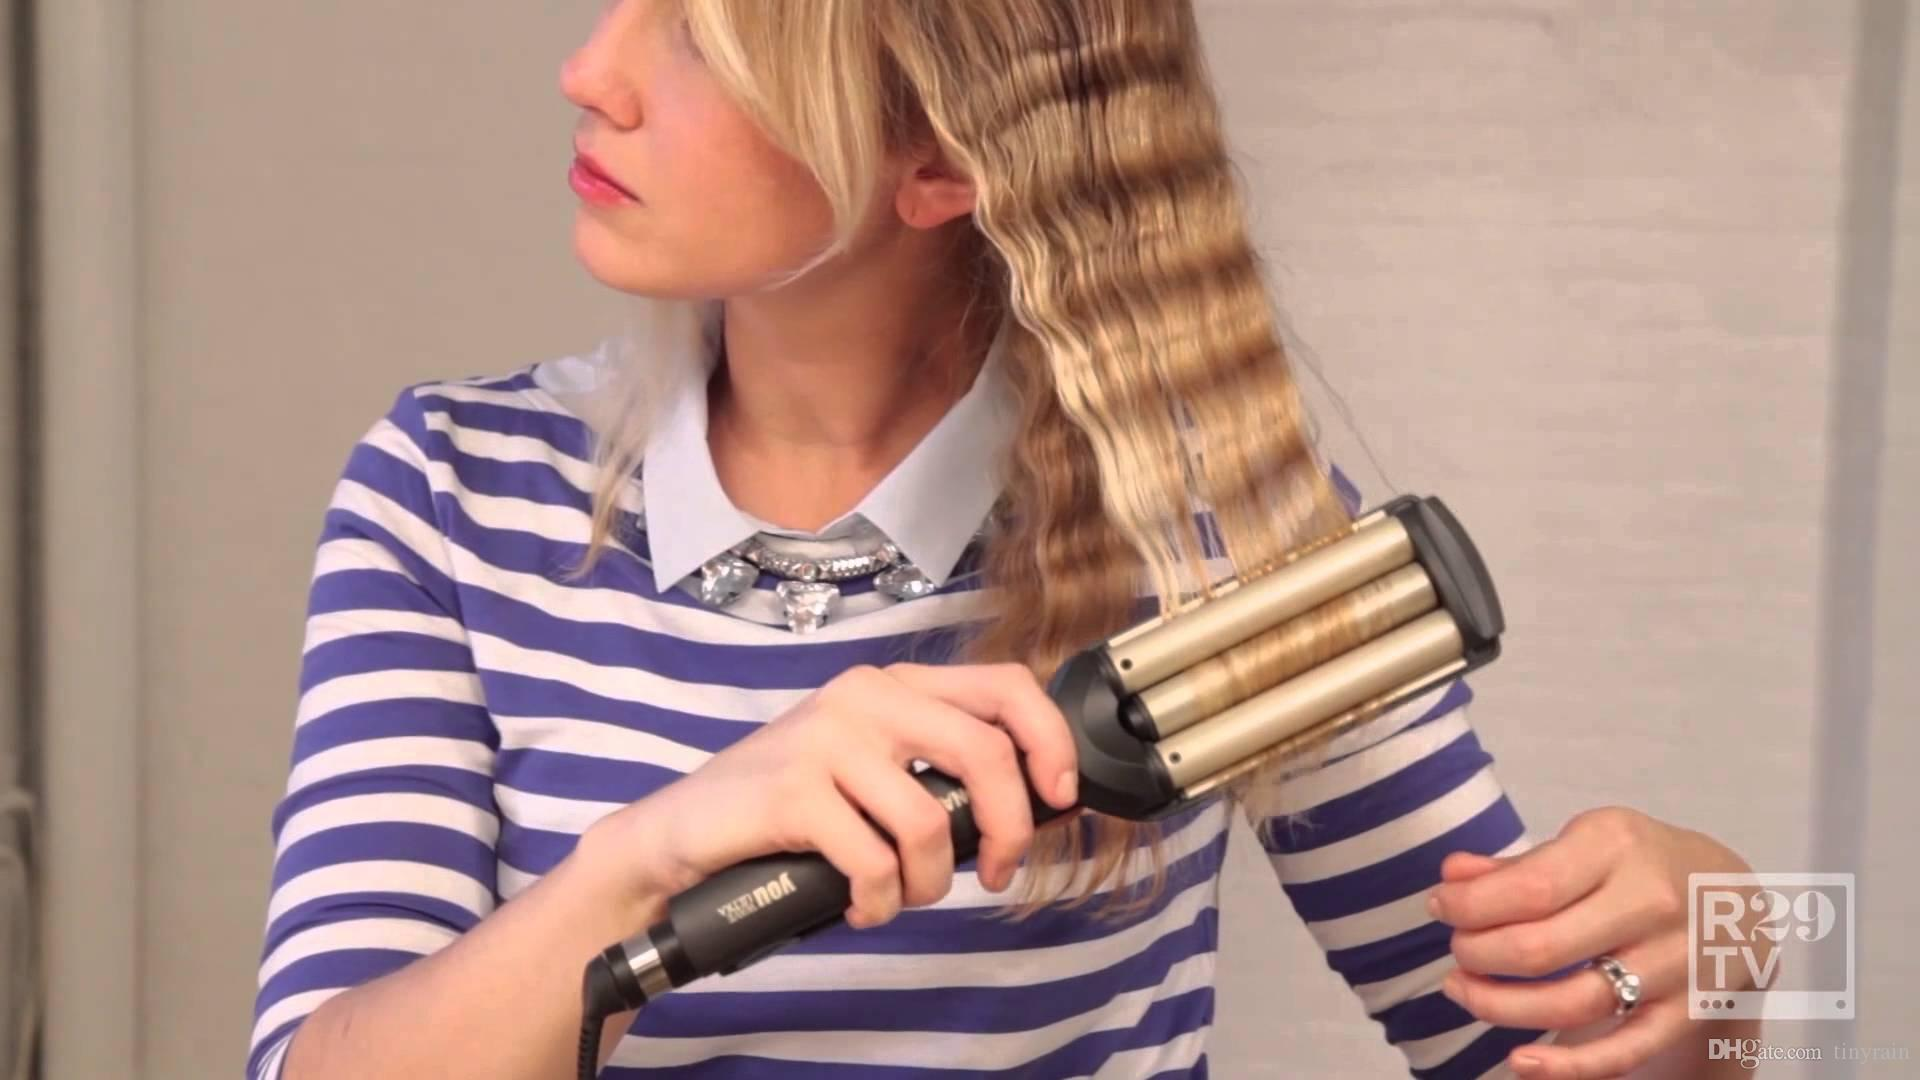 Curling Iron Triple Barrel 5 In 1 Wand Styles Flexi Rods